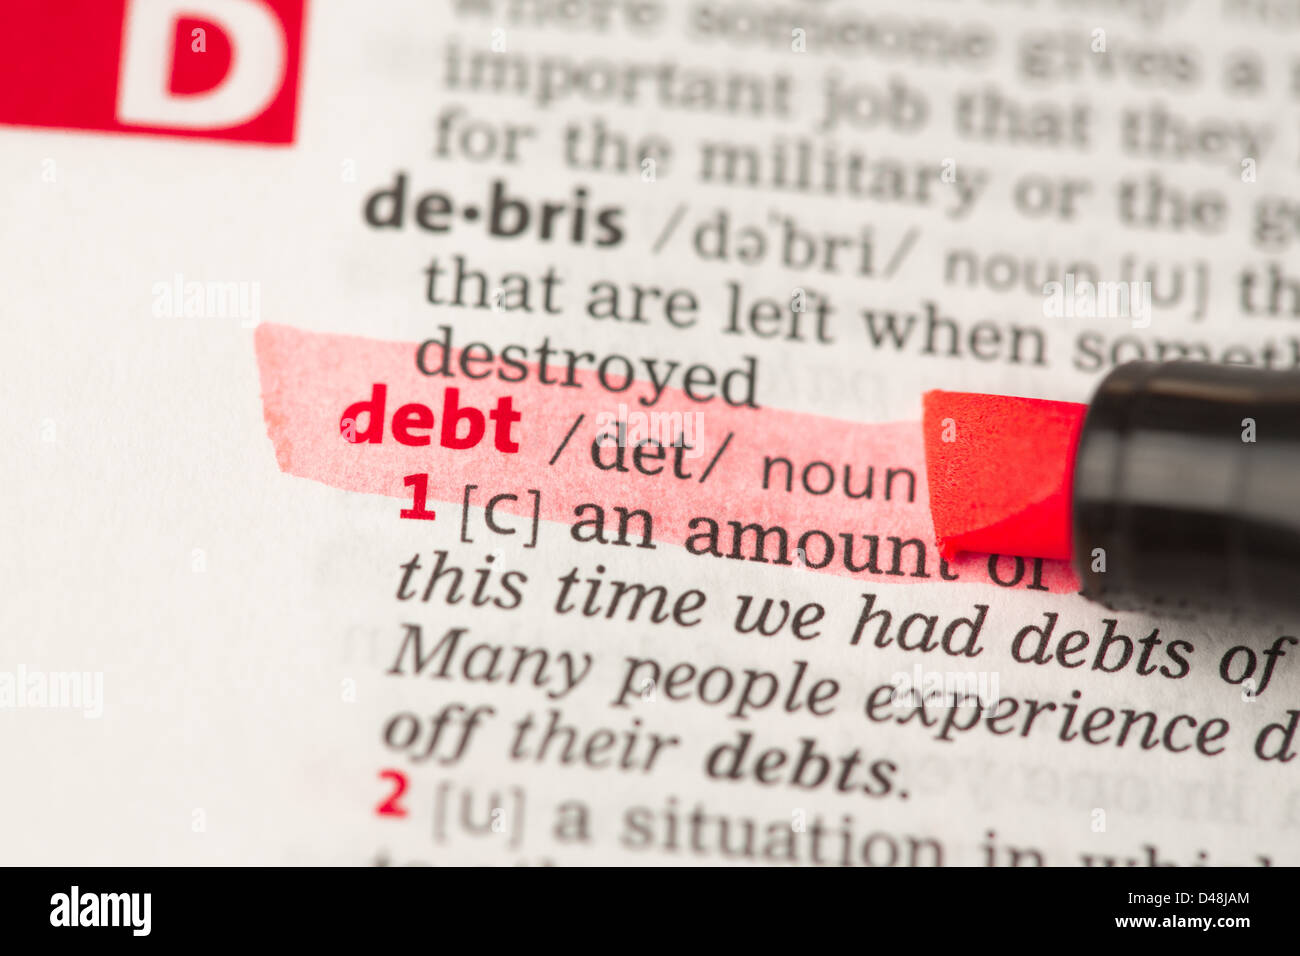 Debt definition highlighted in red - Stock Image